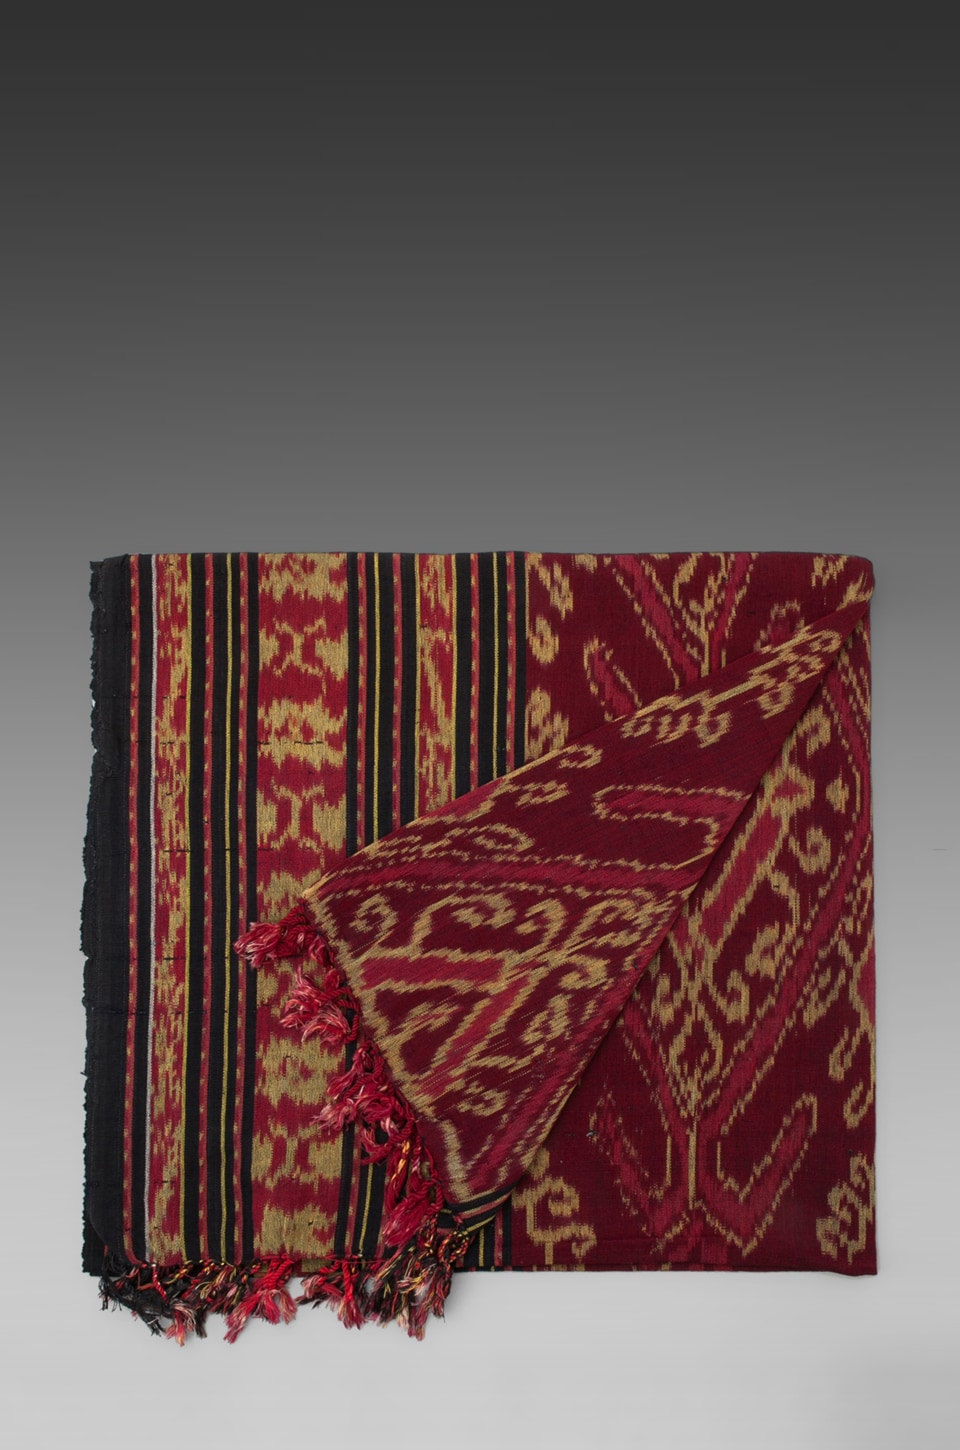 Indah Sumatra Hand Woven Beach Blanket in Red